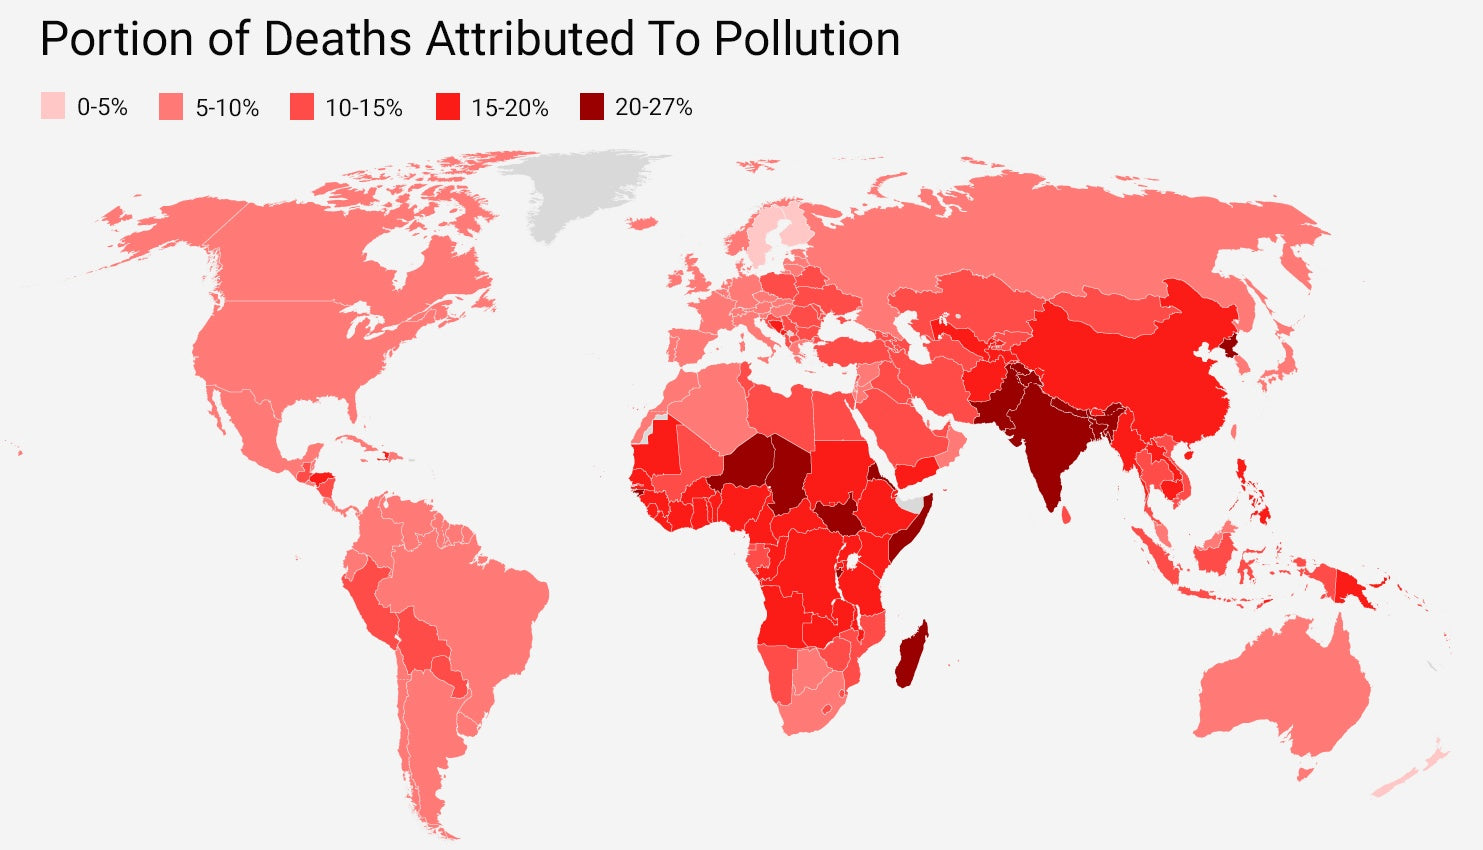 Pollution deaths attributed to pollution